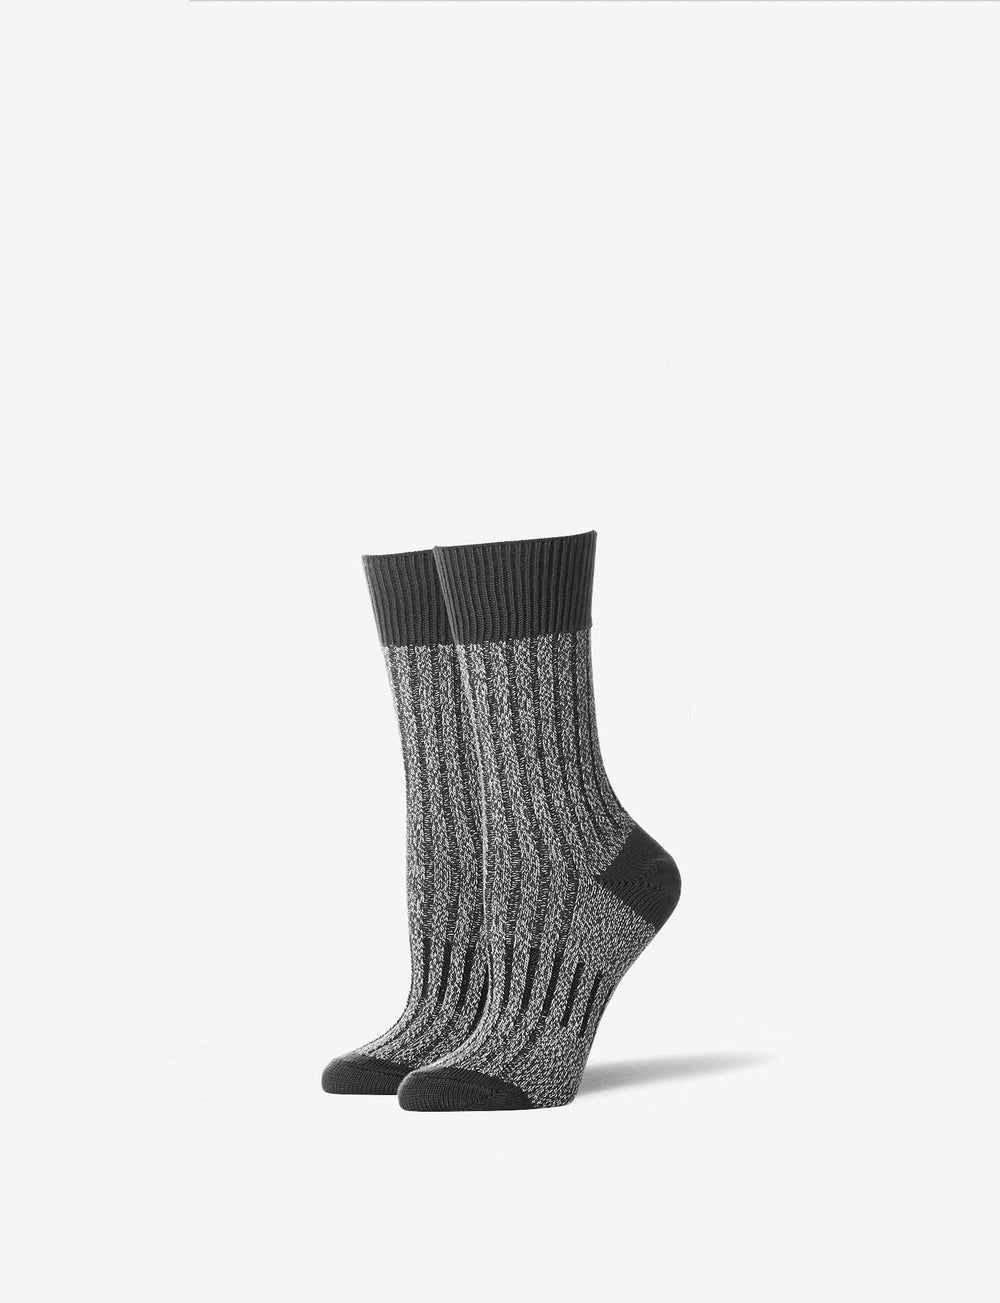 Women's Casual Sock Details Image